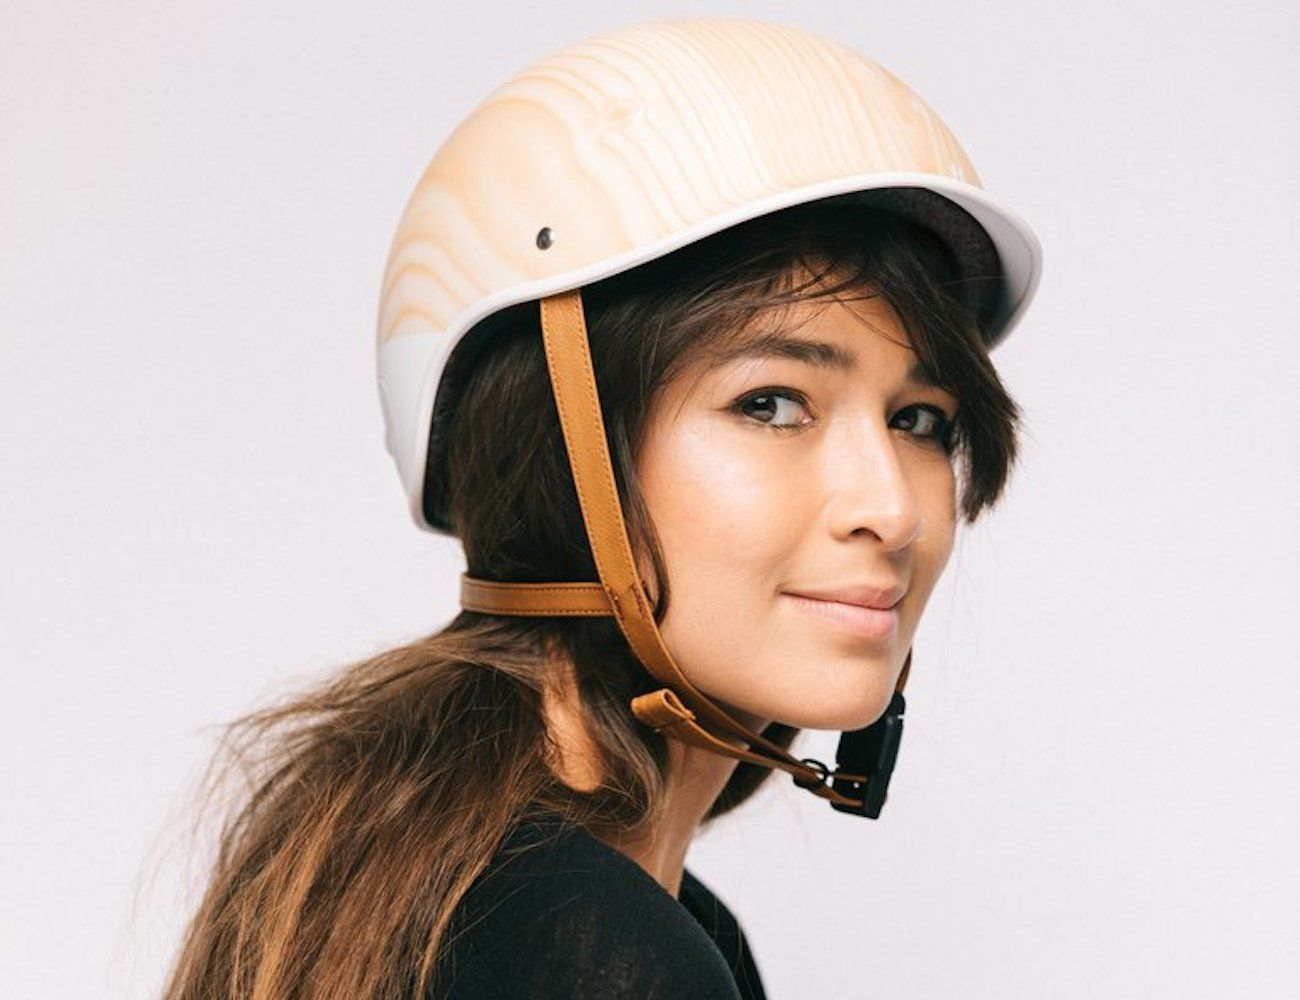 Thousand Epoch Collection Stylish Helmets